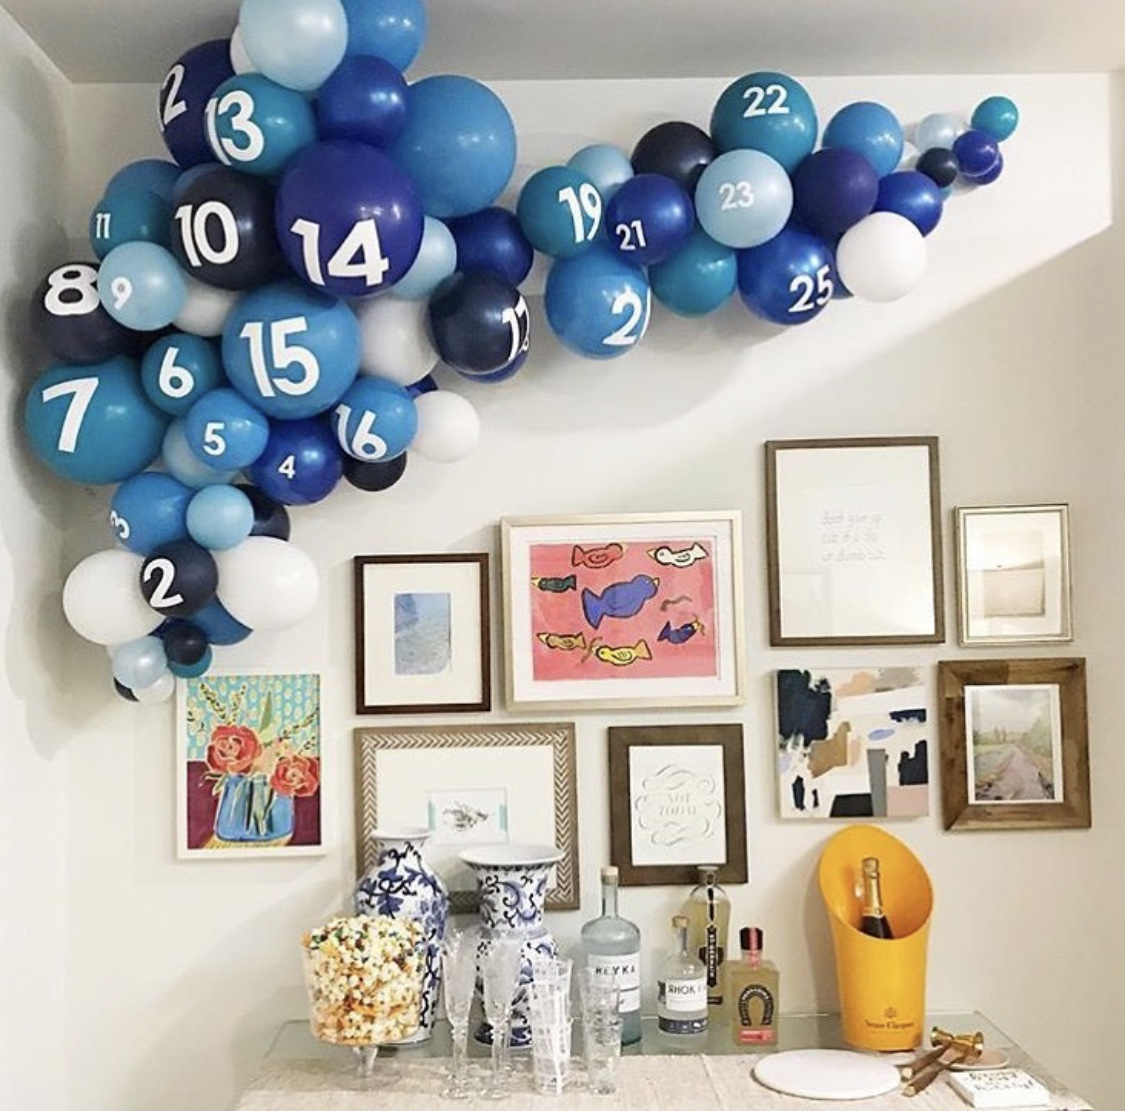 vroom_vroom_balloon_organic_balloon_garland_birthday_blue_ombre.jpg